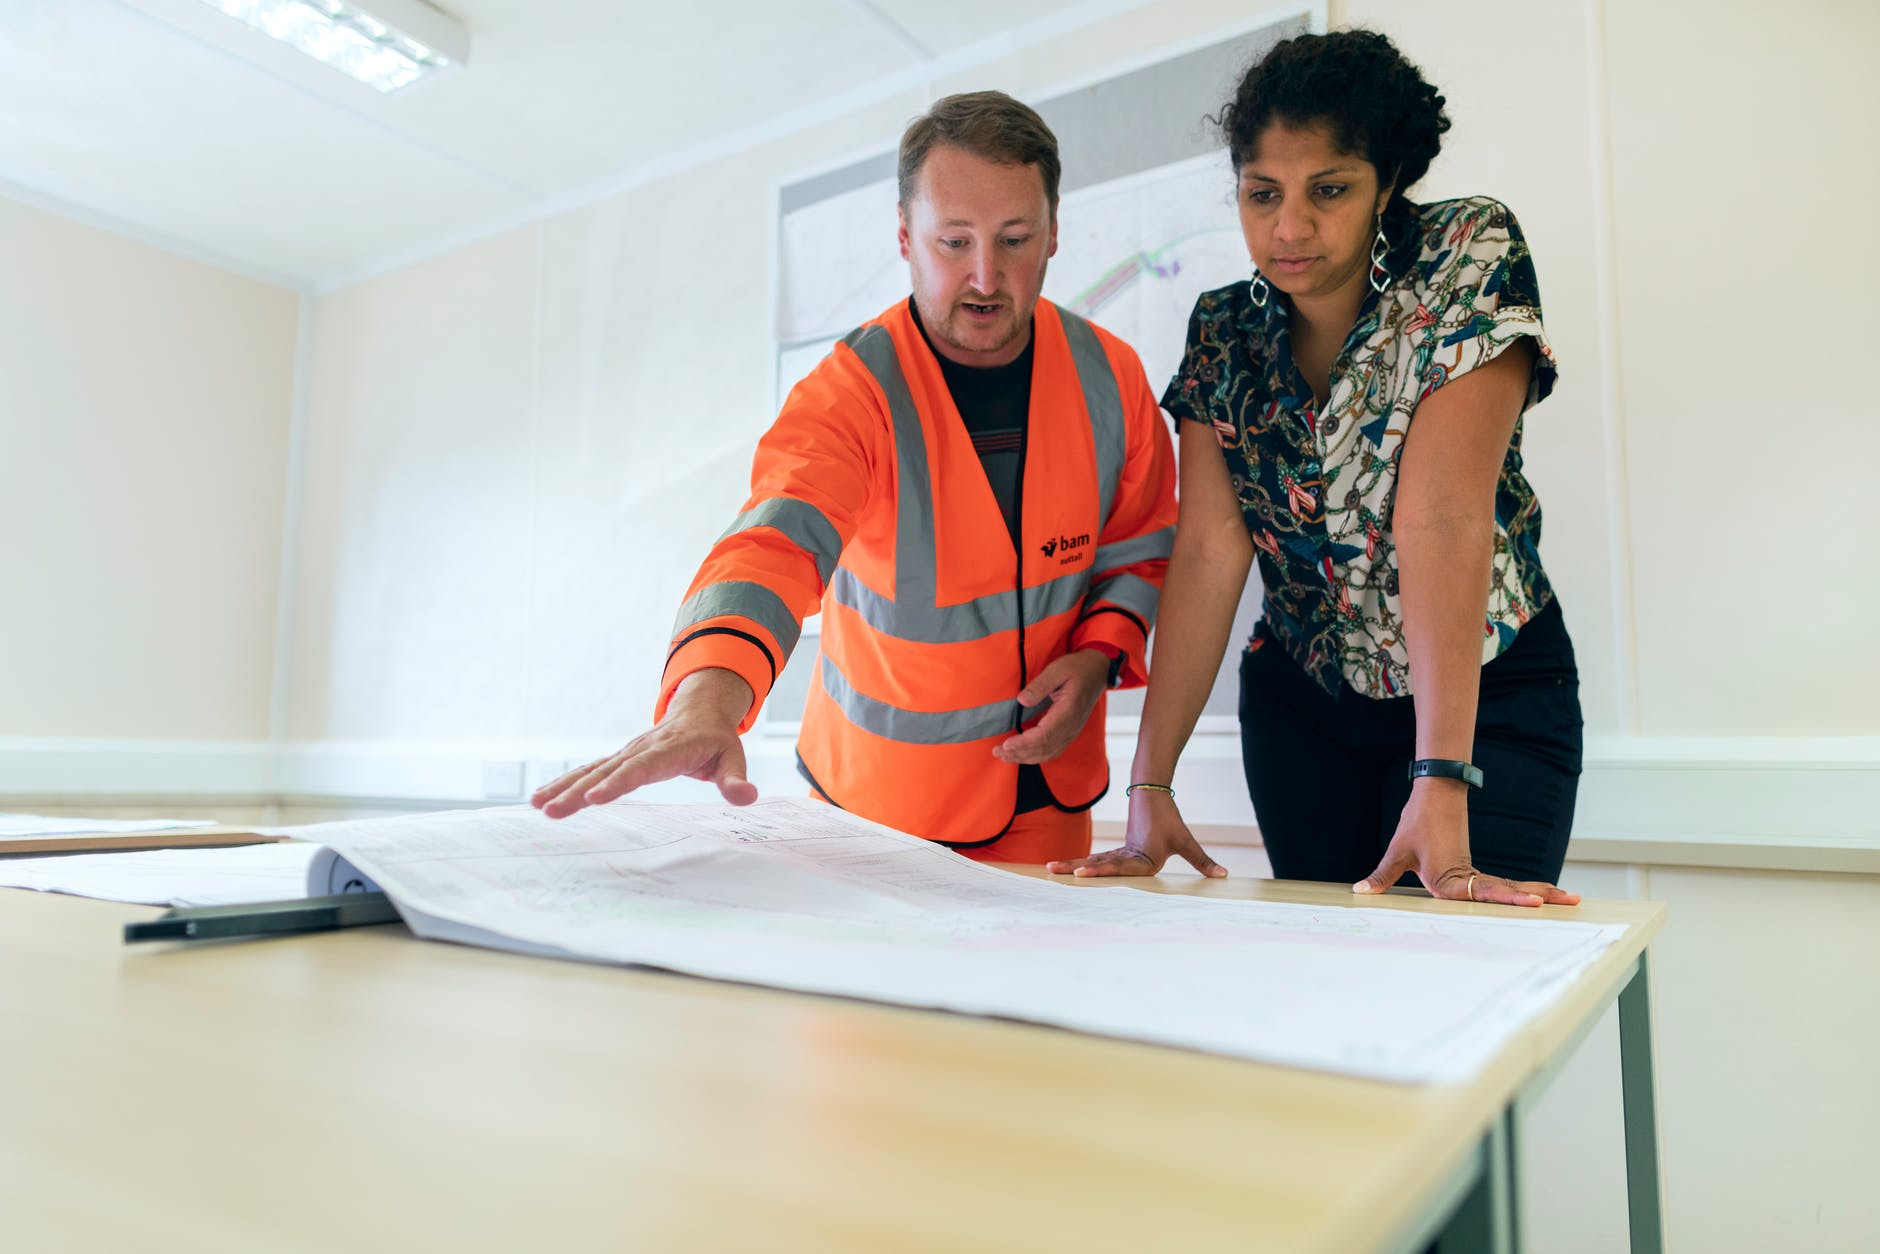 Man and women stood discussing building plans